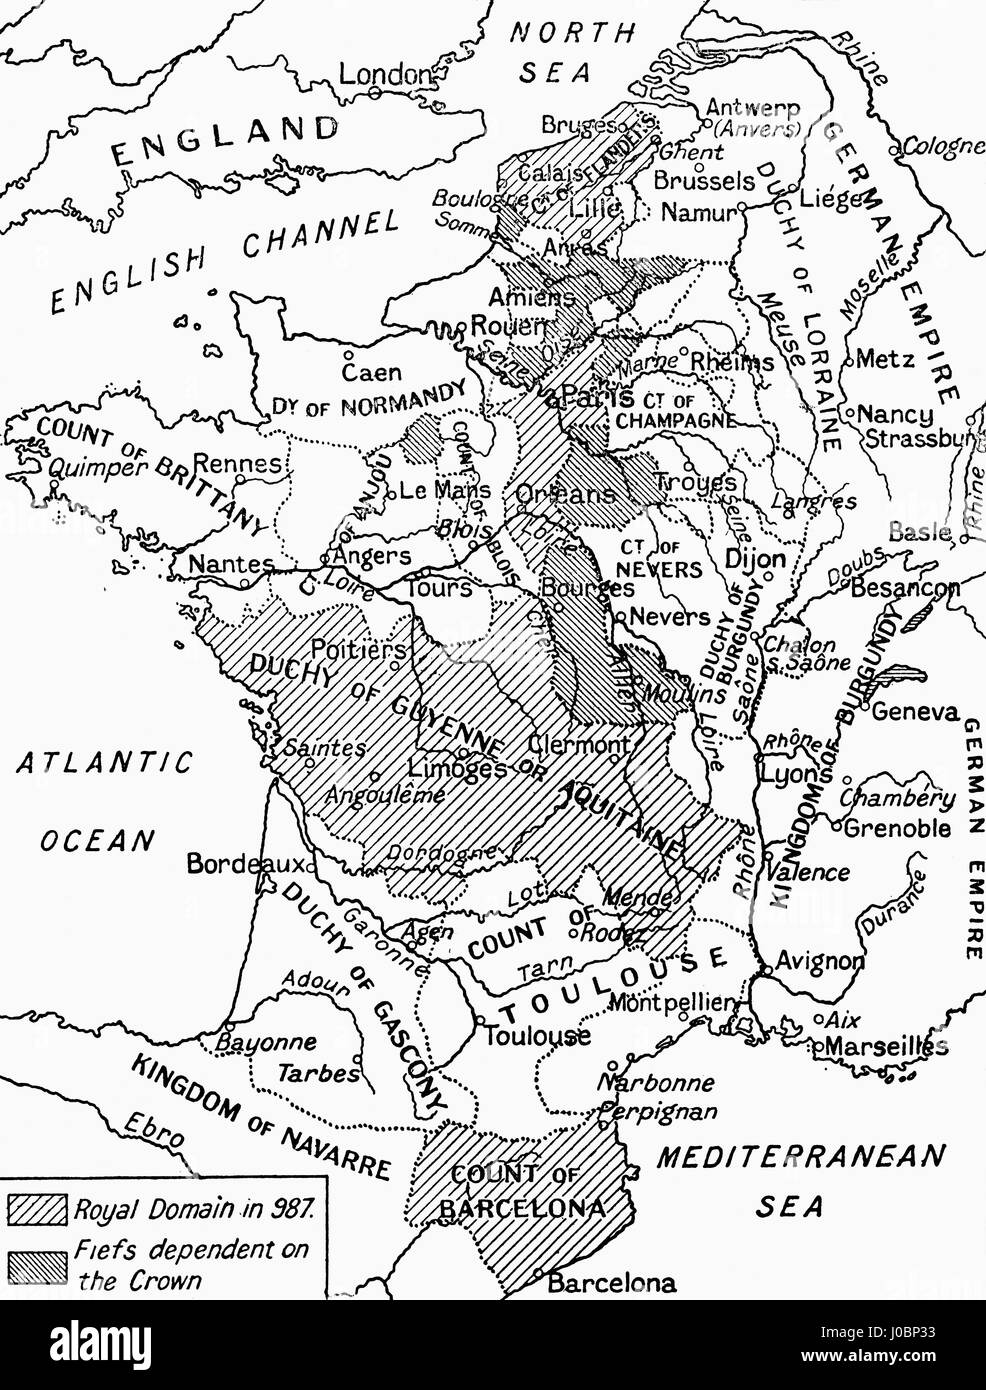 A map of feudal France in 987.  From Hutchinson's History of the Nations, published 1915. - Stock Image